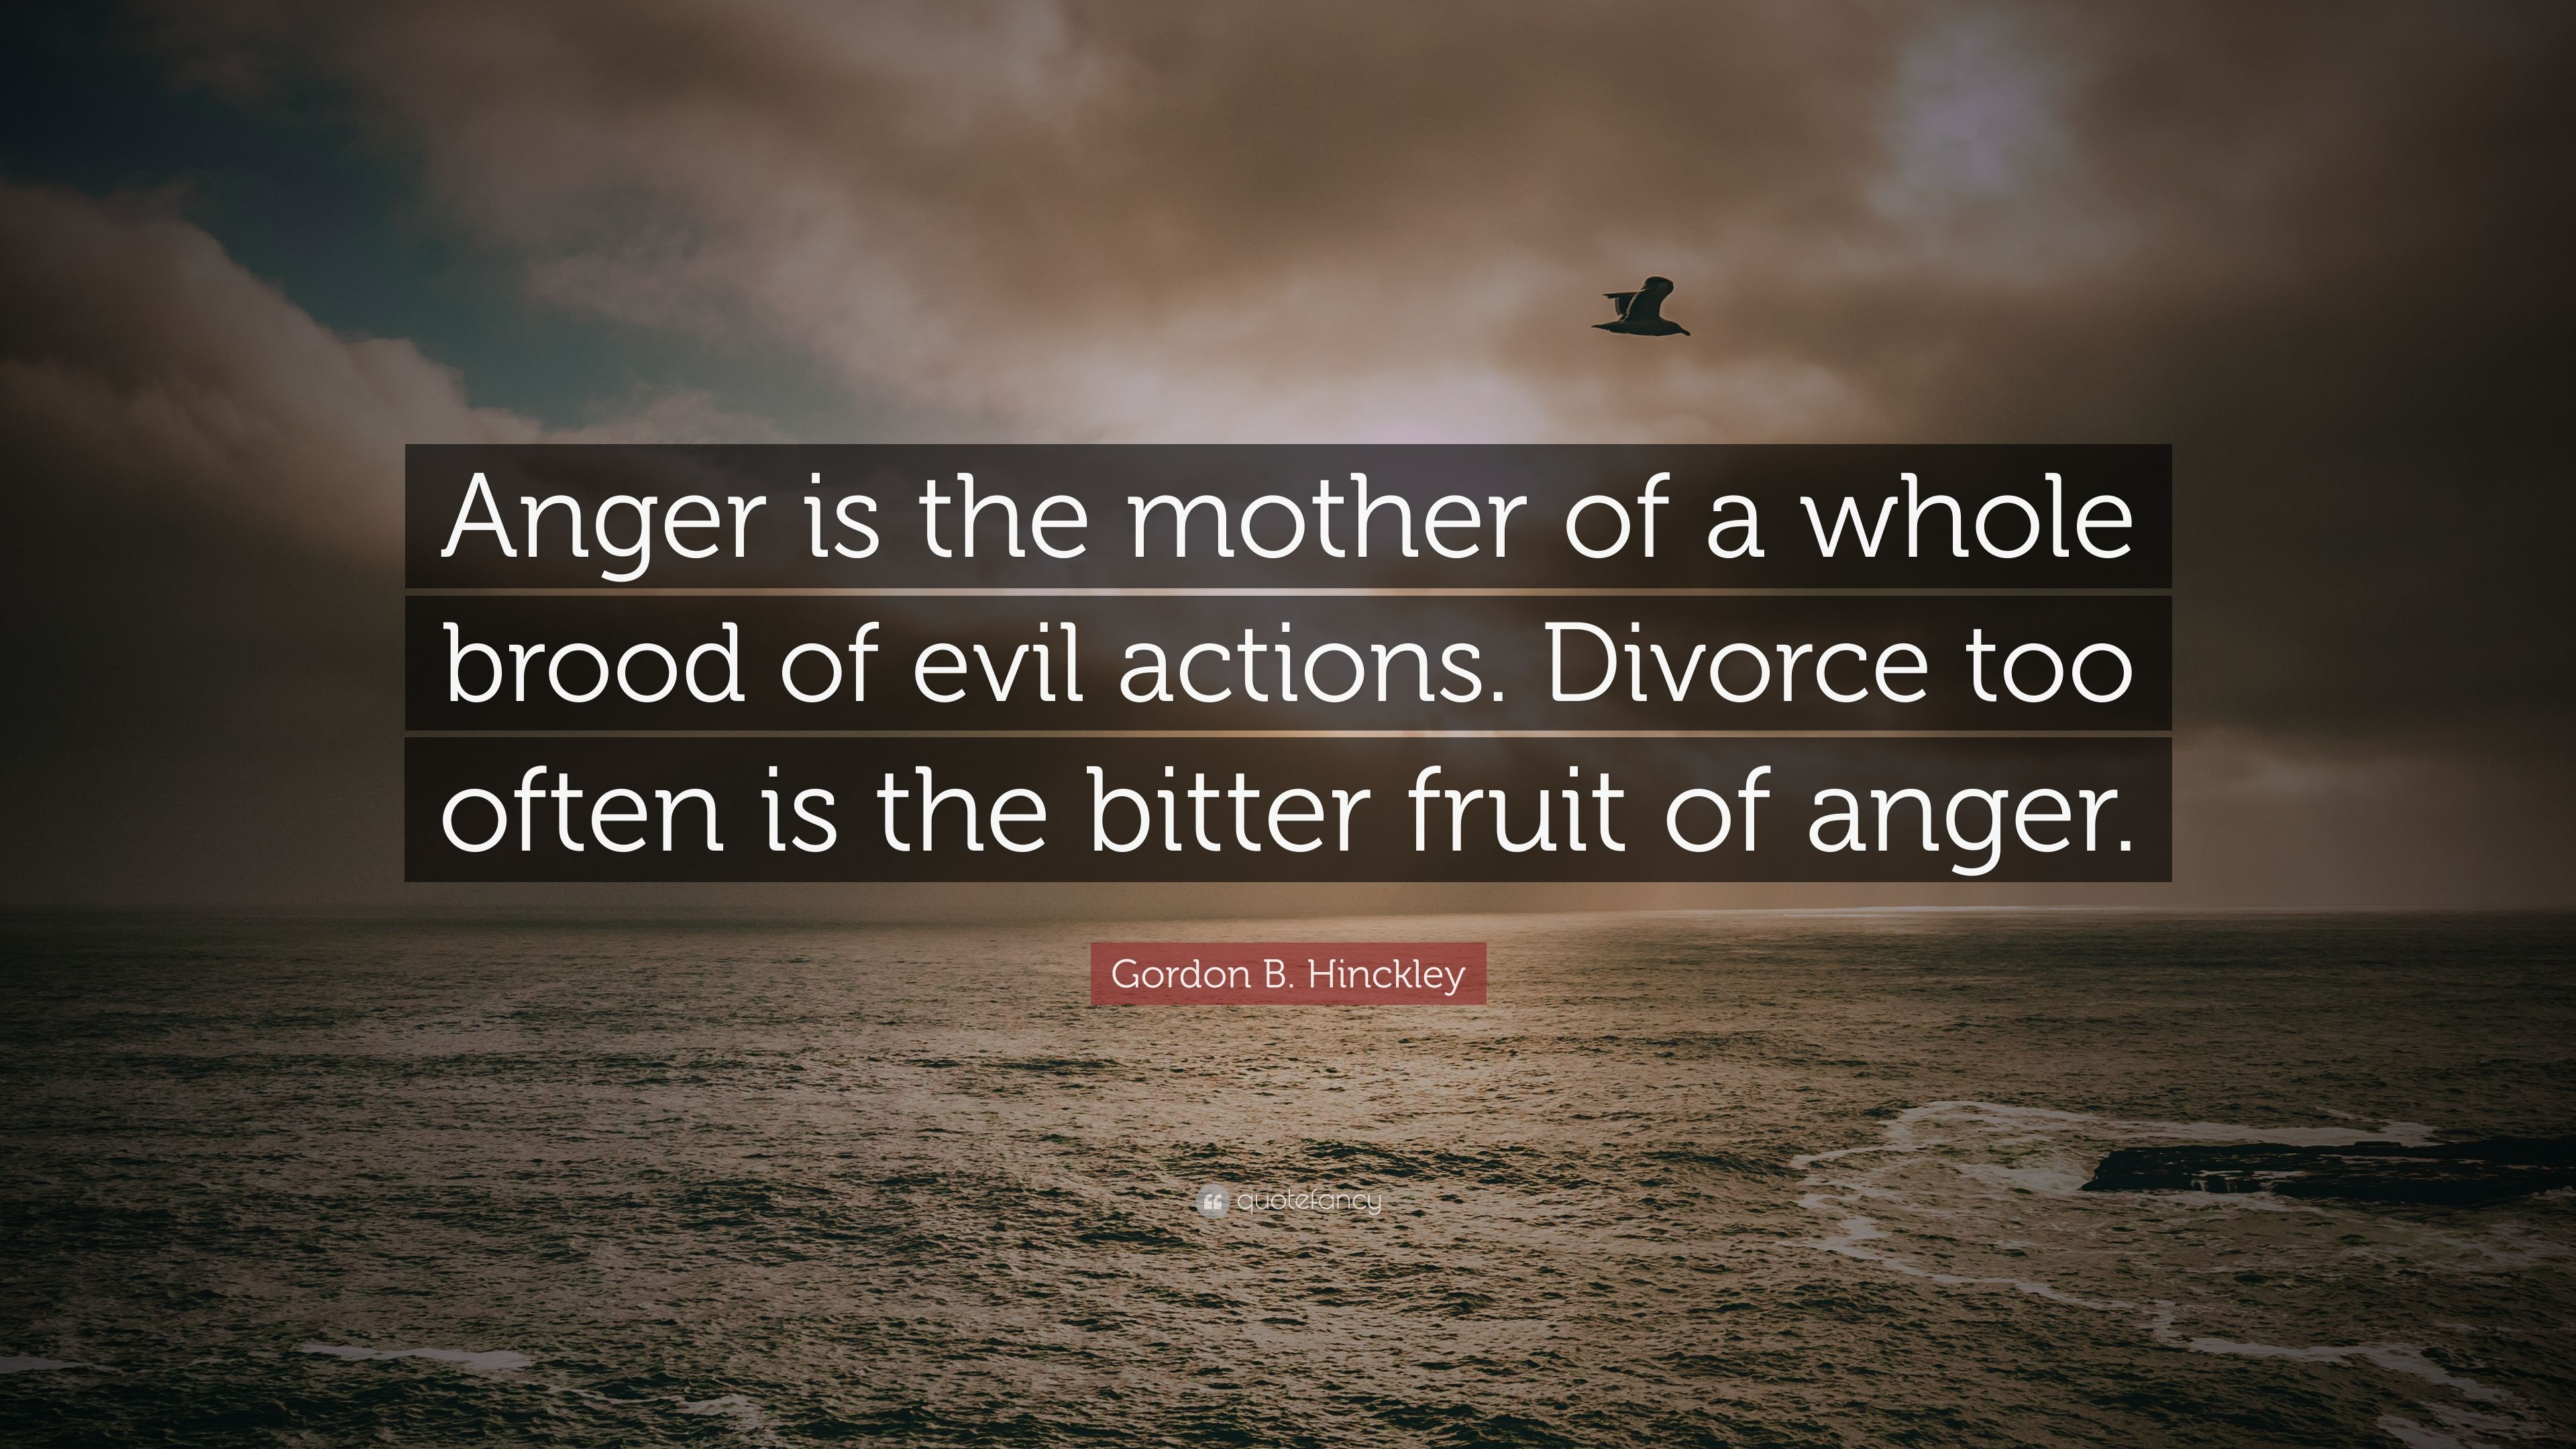 Anger of a mother rayra 2